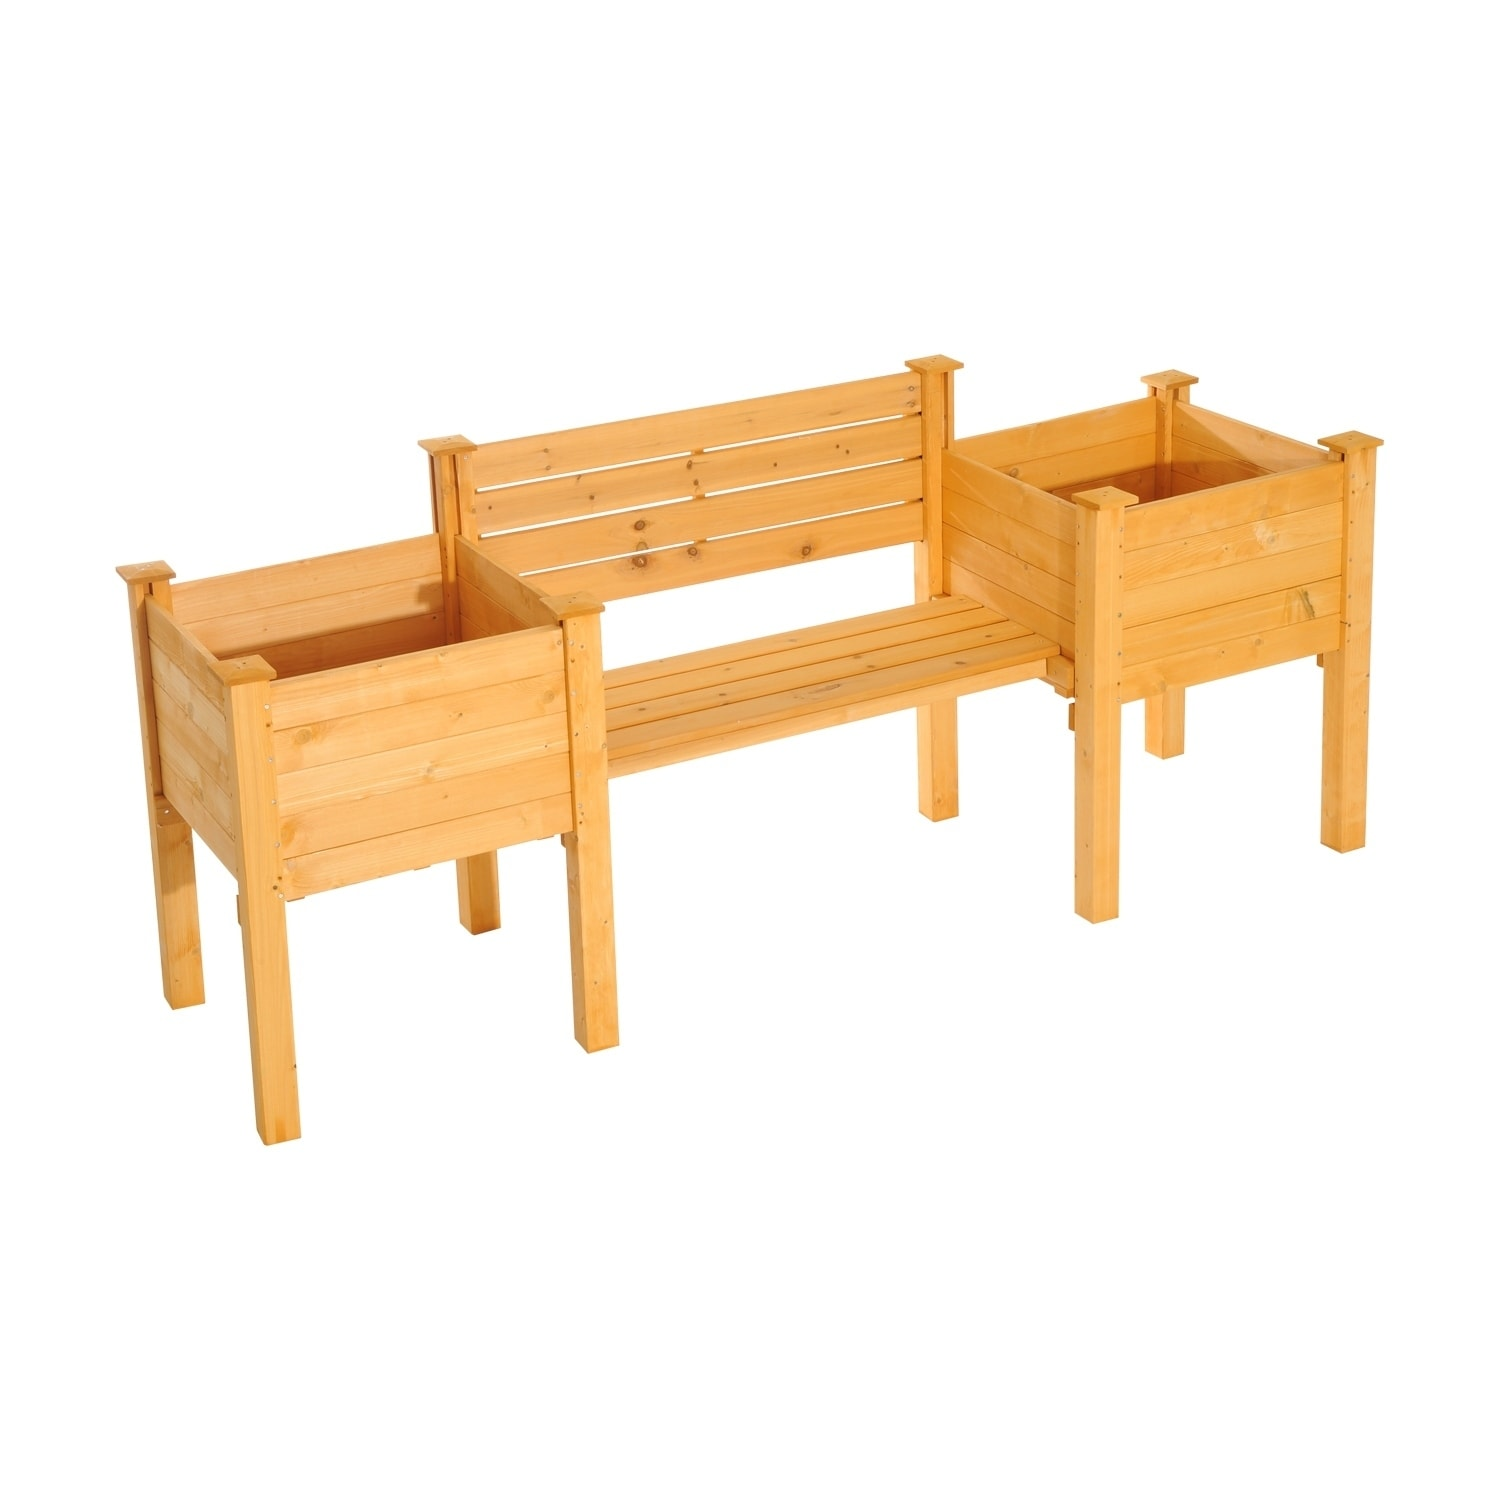 "Aosom Outsunny 82"" Wooden Garden Bench W/ Flower Bed Plan..."